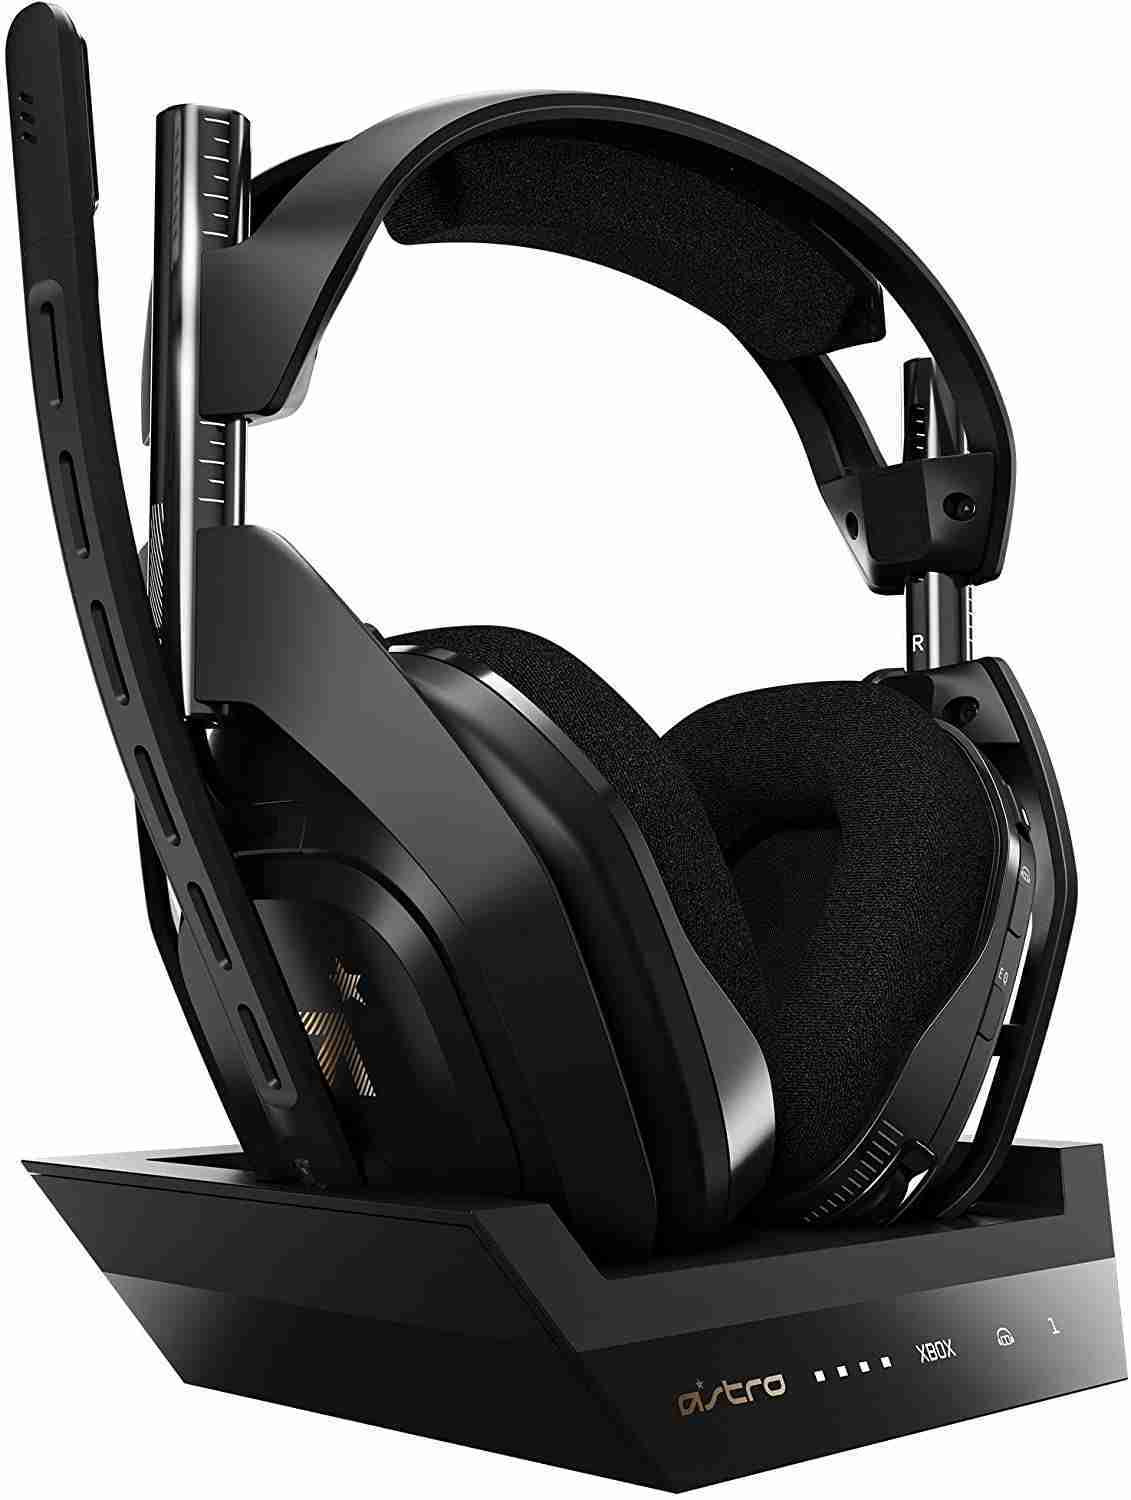 Astro Gaming Cuffia con Microfono Wireless A50